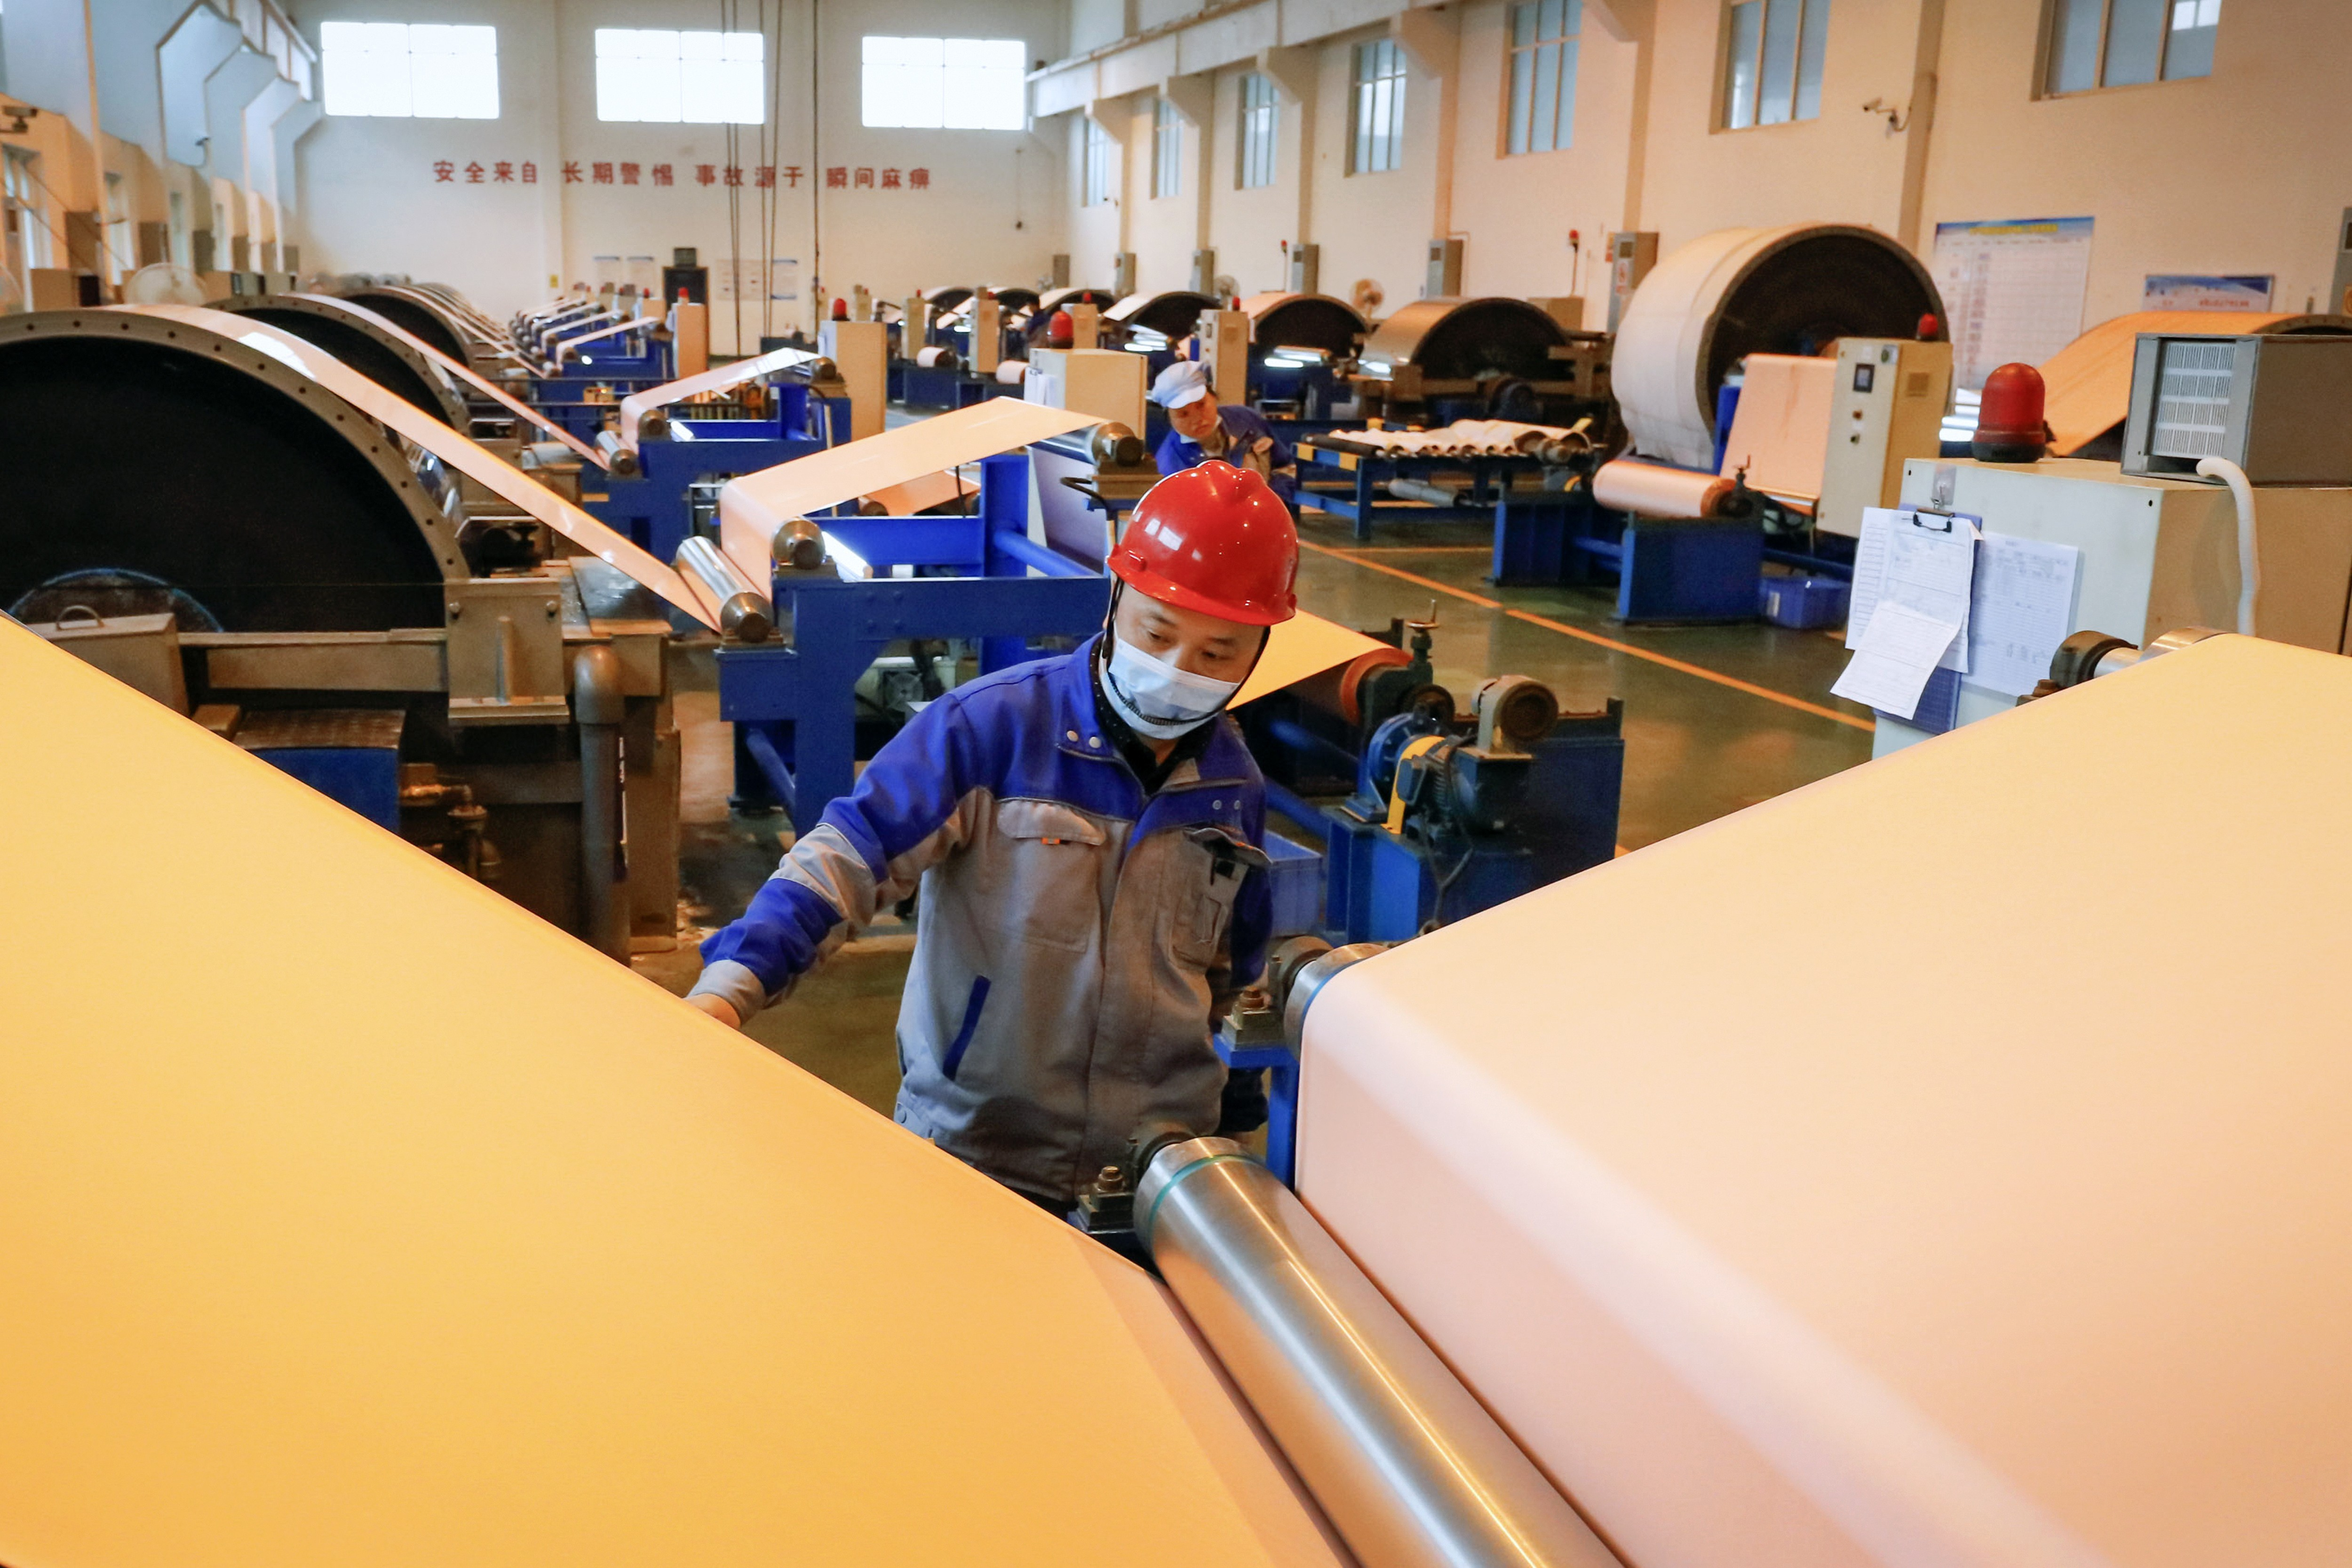 China's small businesses forced to cut back on staff just to